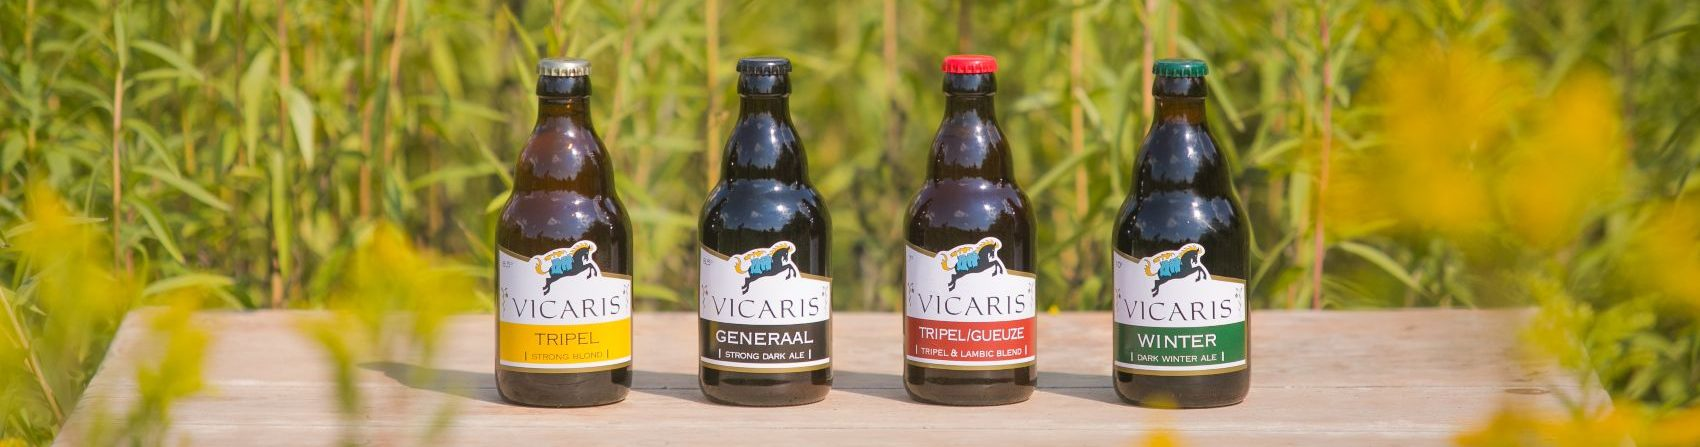 Vicaris assortiment